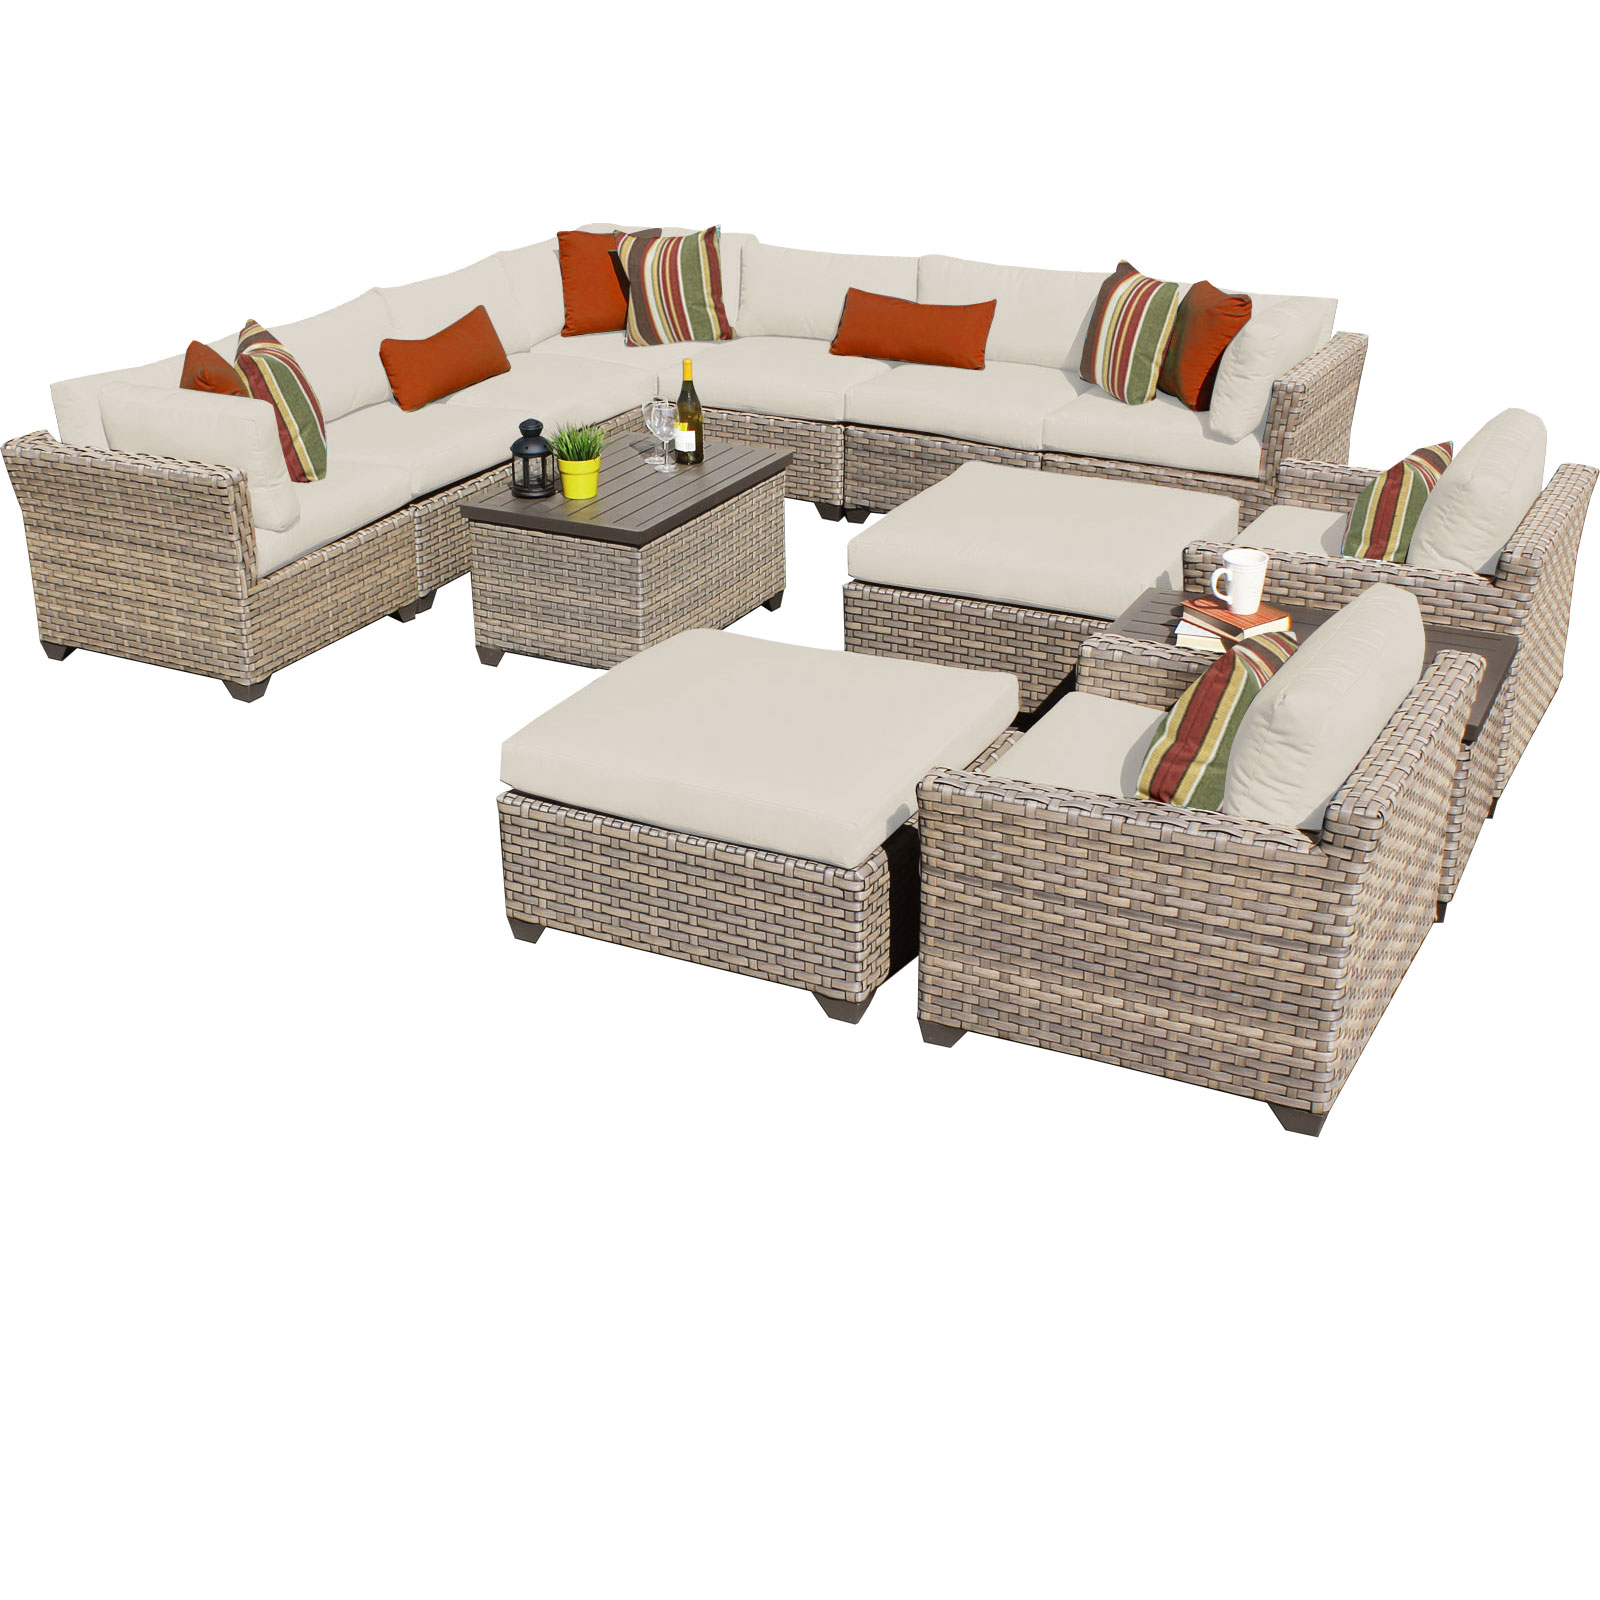 Hampton 13 Piece Outdoor Wicker Patio Furniture Set 13a by Wicker Furniture